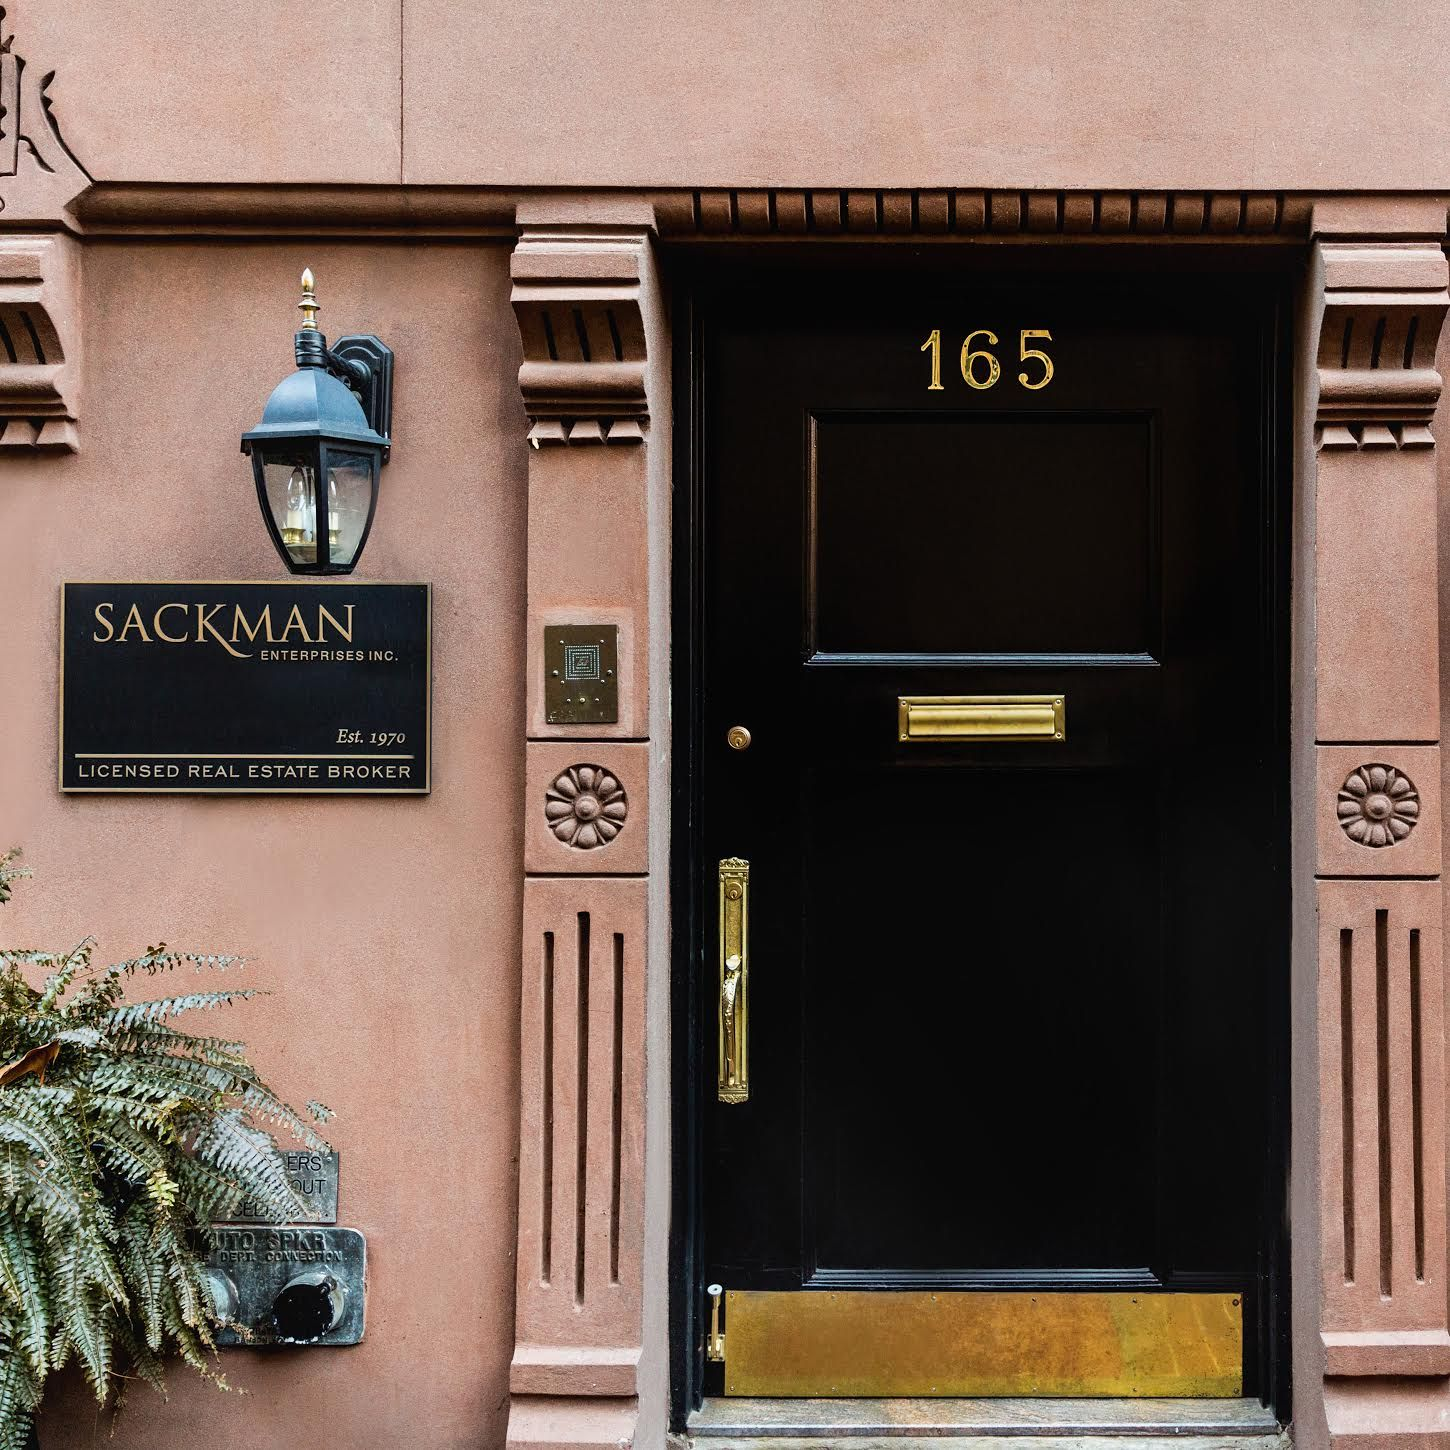 Image of the Sackman Enterprises building's front door on a light pink wall with black and gold trim